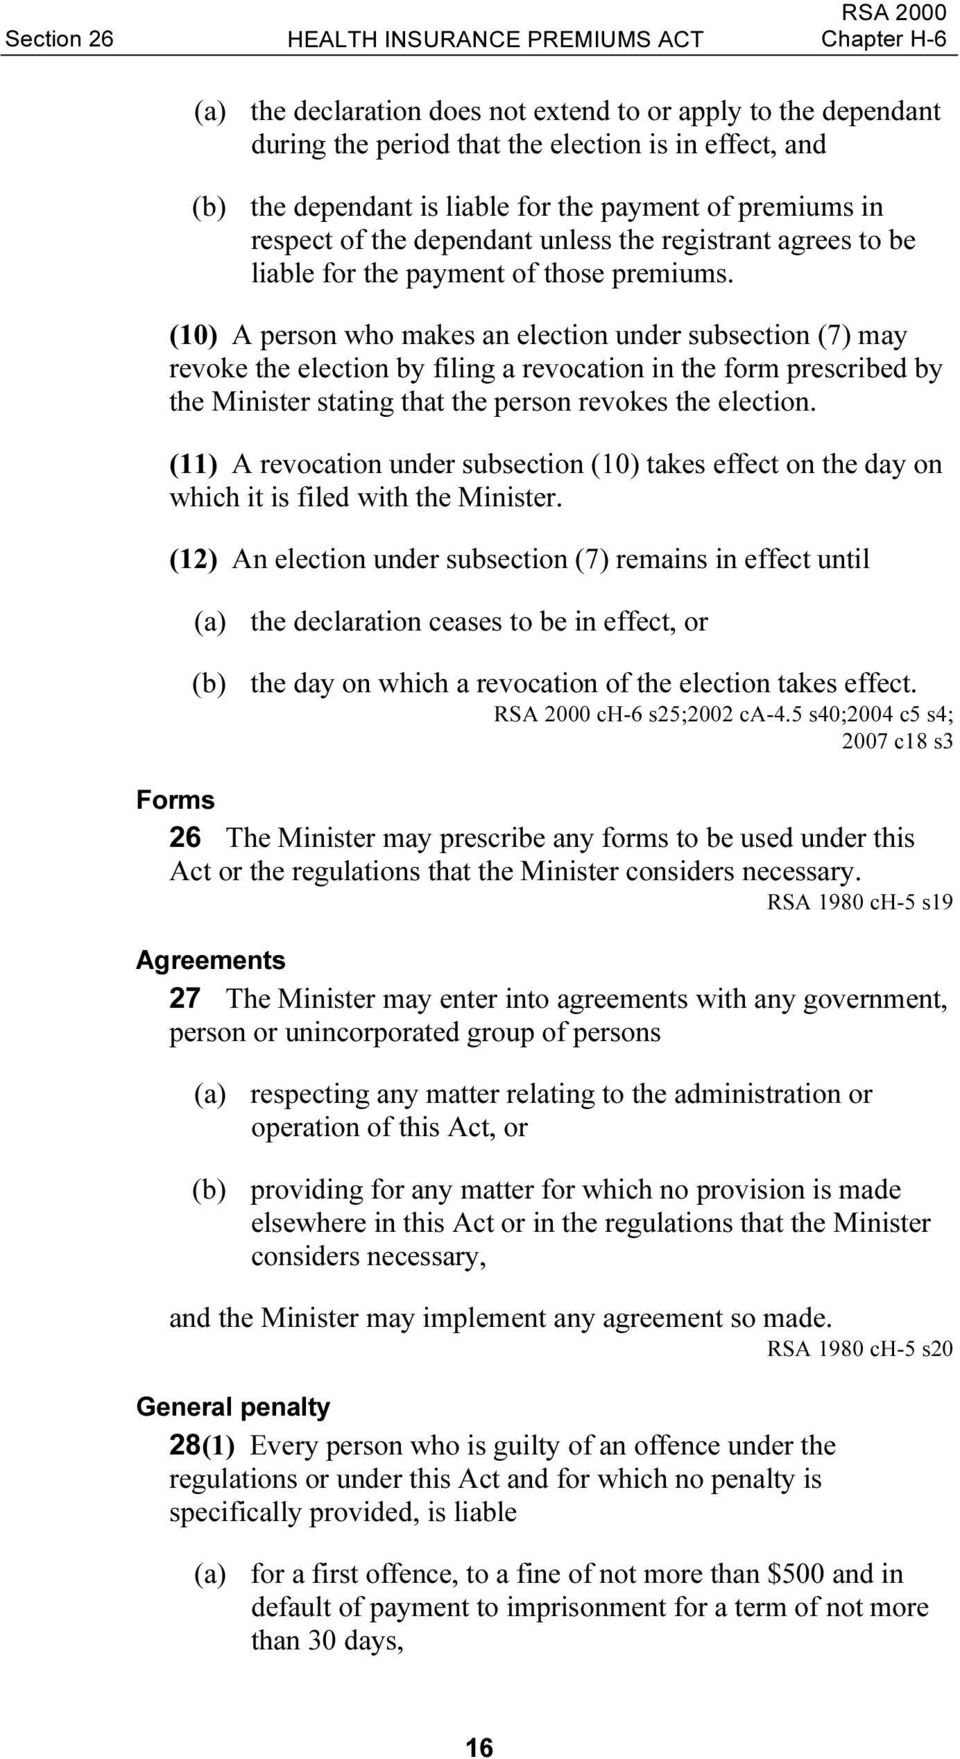 (10) A person who makes an election under subsection (7) may revoke the election by filing a revocation in the form prescribed by the Minister stating that the person revokes the election.